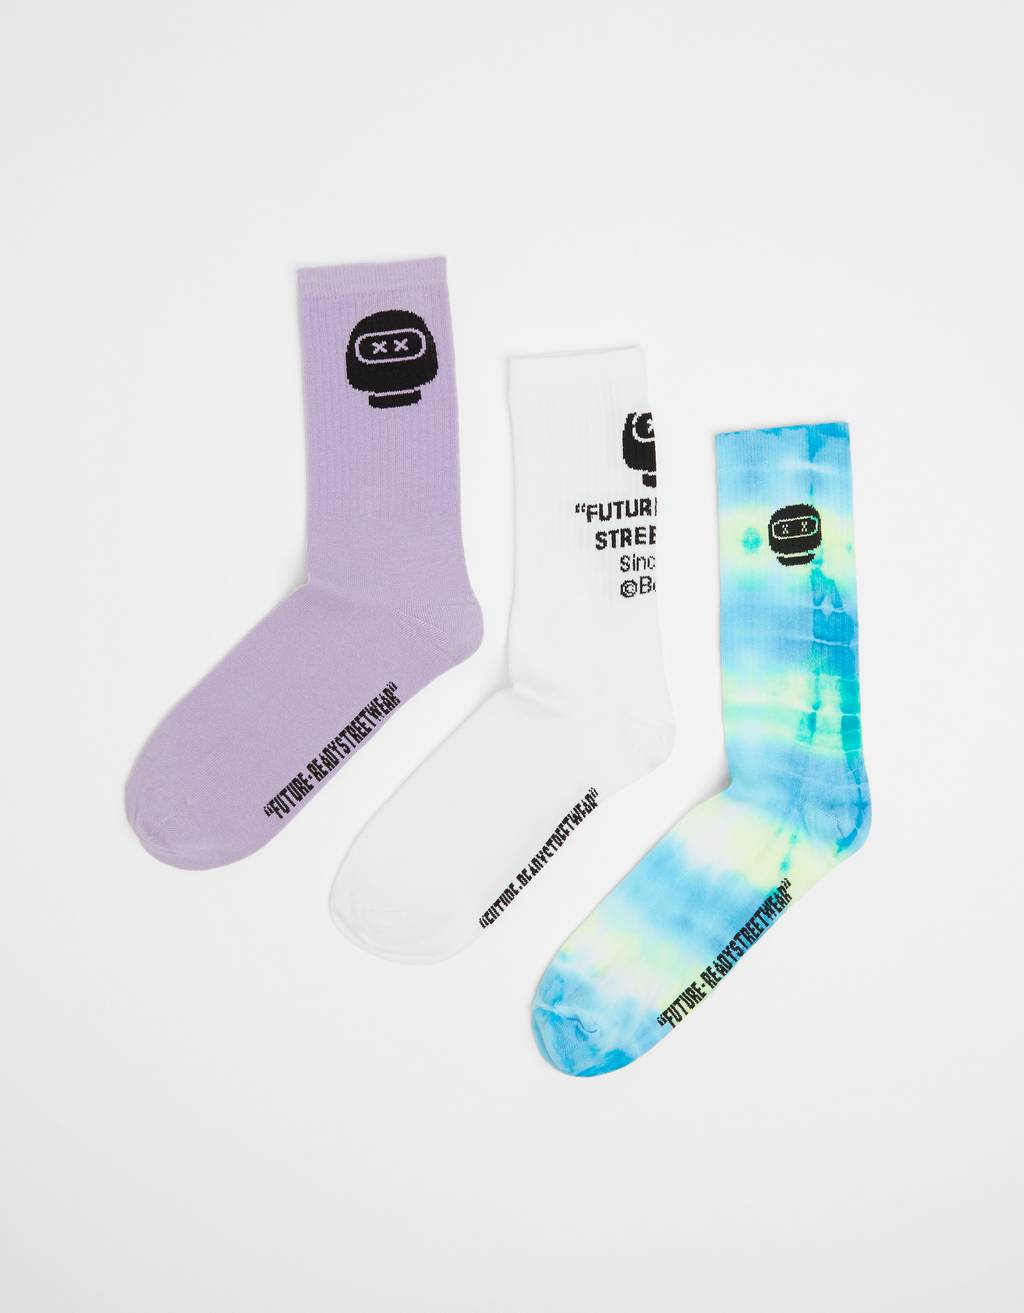 Pack of FUTURE-READY socks